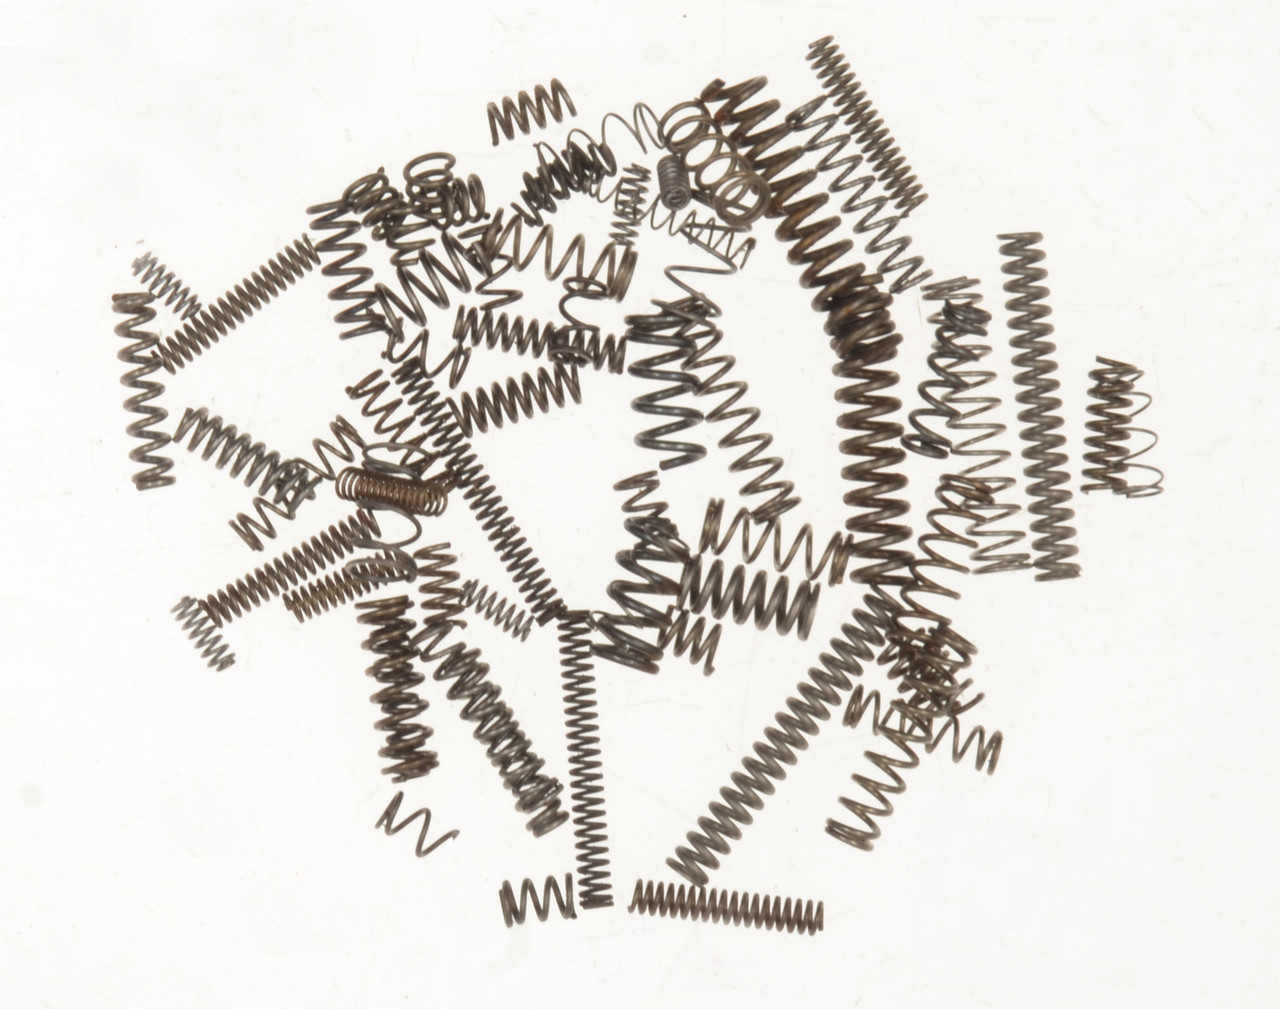 LUGER SMALL SPRING ASSORTMENT - C46997